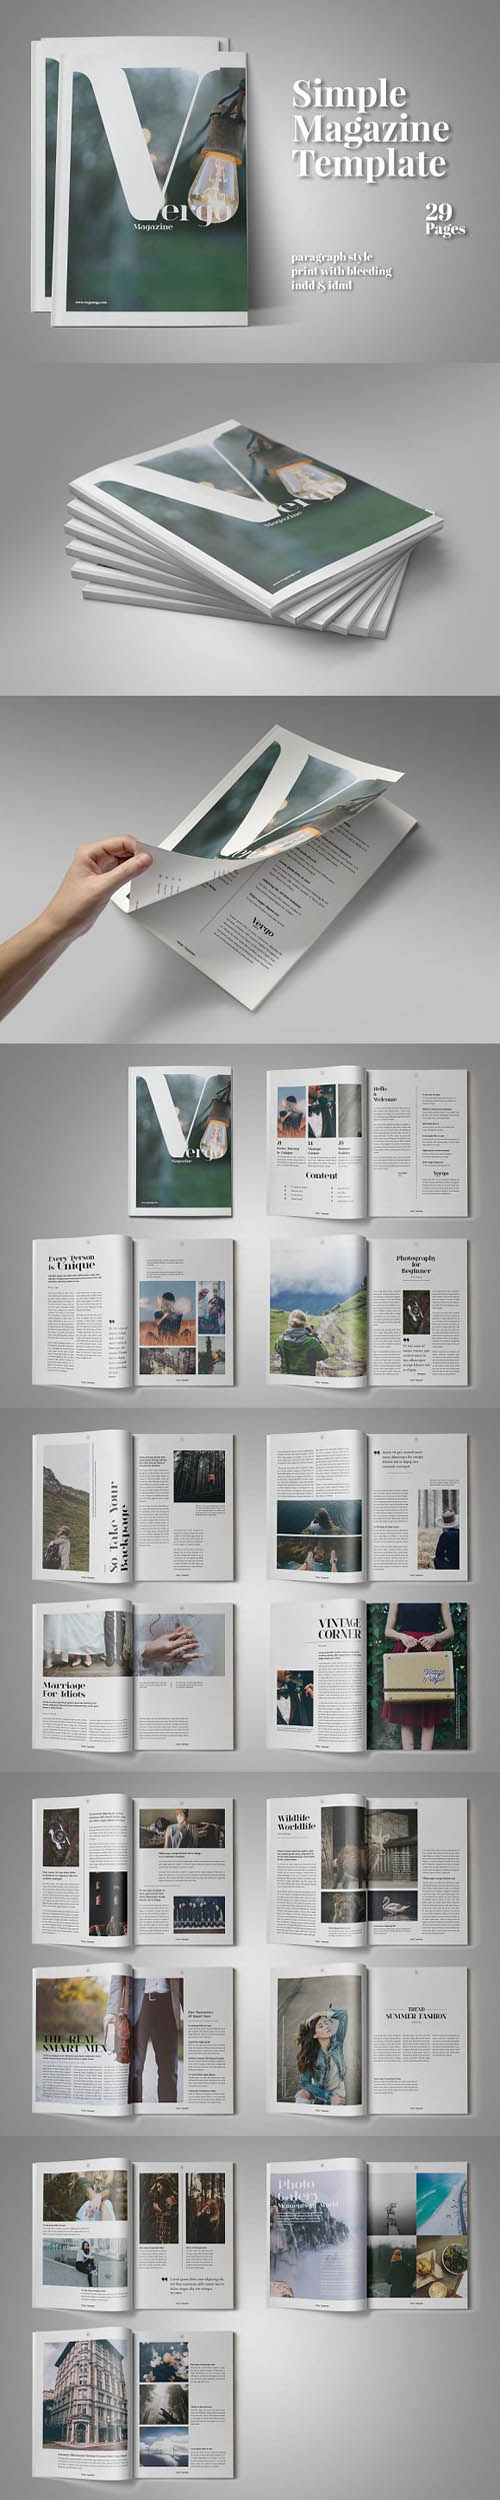 CM 1681758 - Vergo Magazine (2017 Edition)